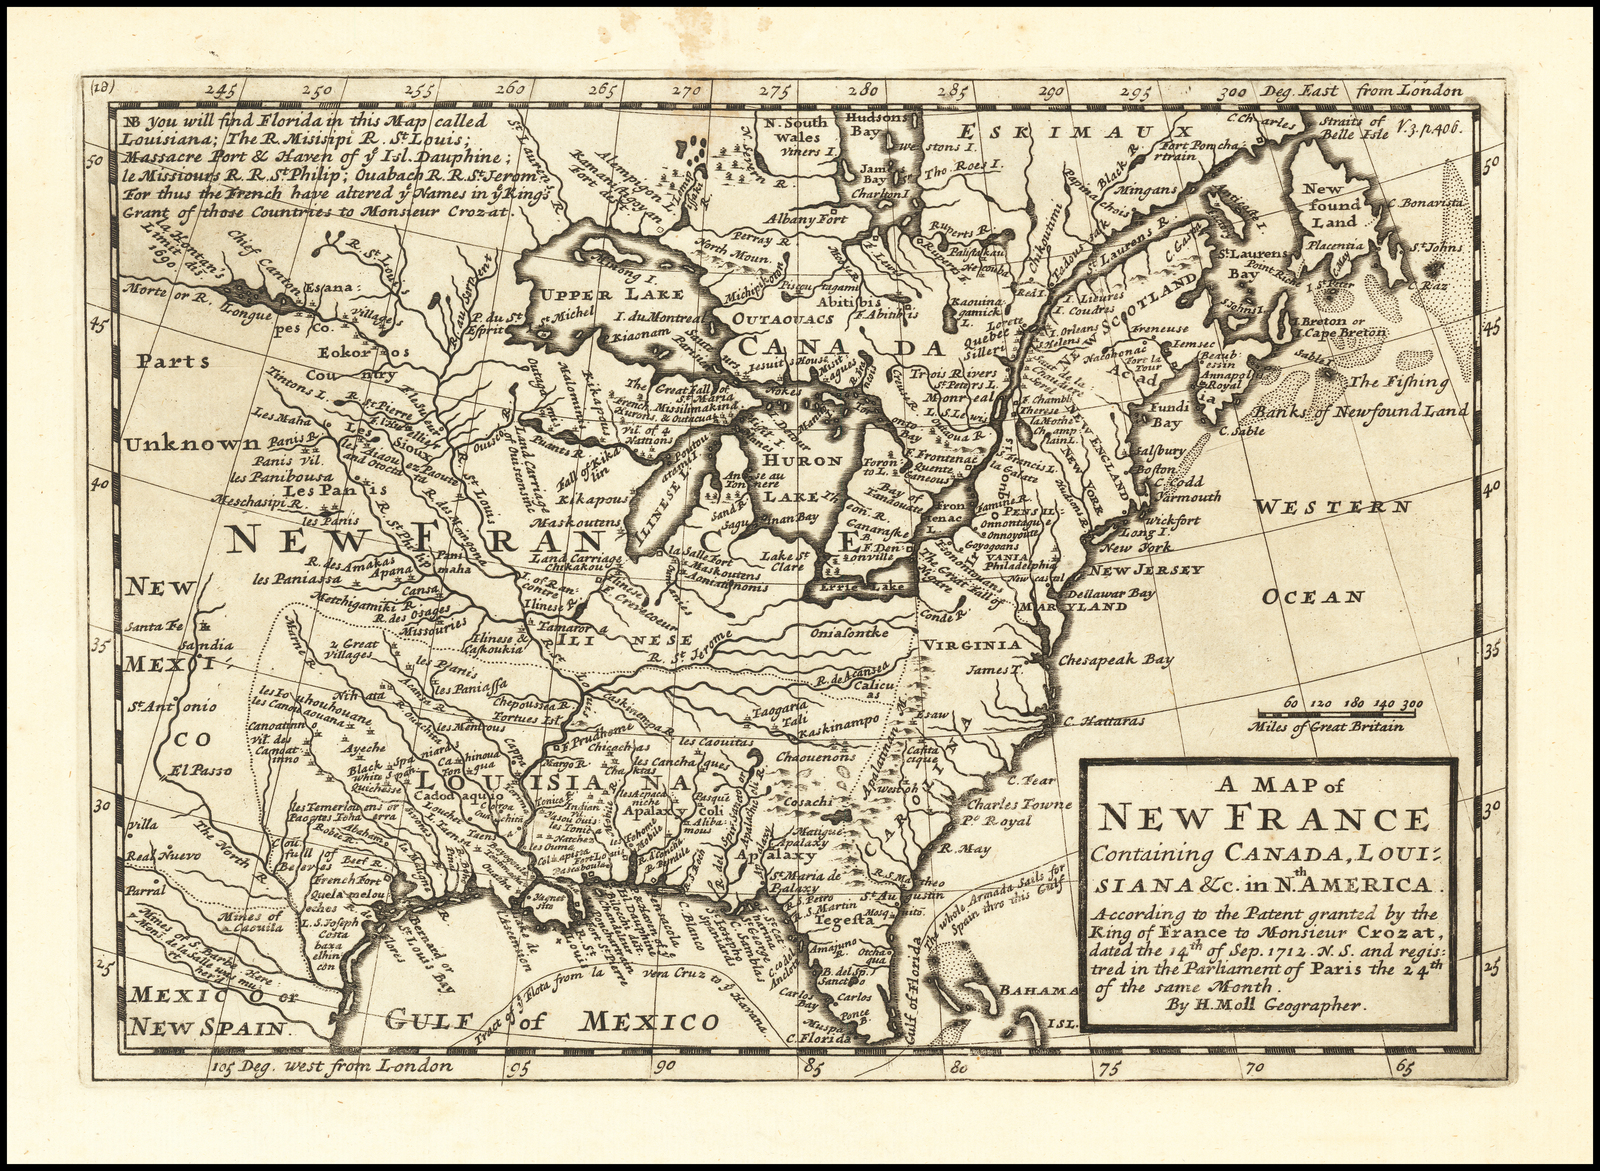 "Digital Copy of Herman Moll Map of New France, courtesy of Micah I. Evans.  This English language map of New France is based on the Crozat Patent issued in Septemper 1712.  While the rivers are roughly placed and disappear into ""Parts Unknown"", the Panis, or Pawnee, are shown.  The presumed Pawnee villages visited by Villasur match those near present-day Columbus Nebraska."